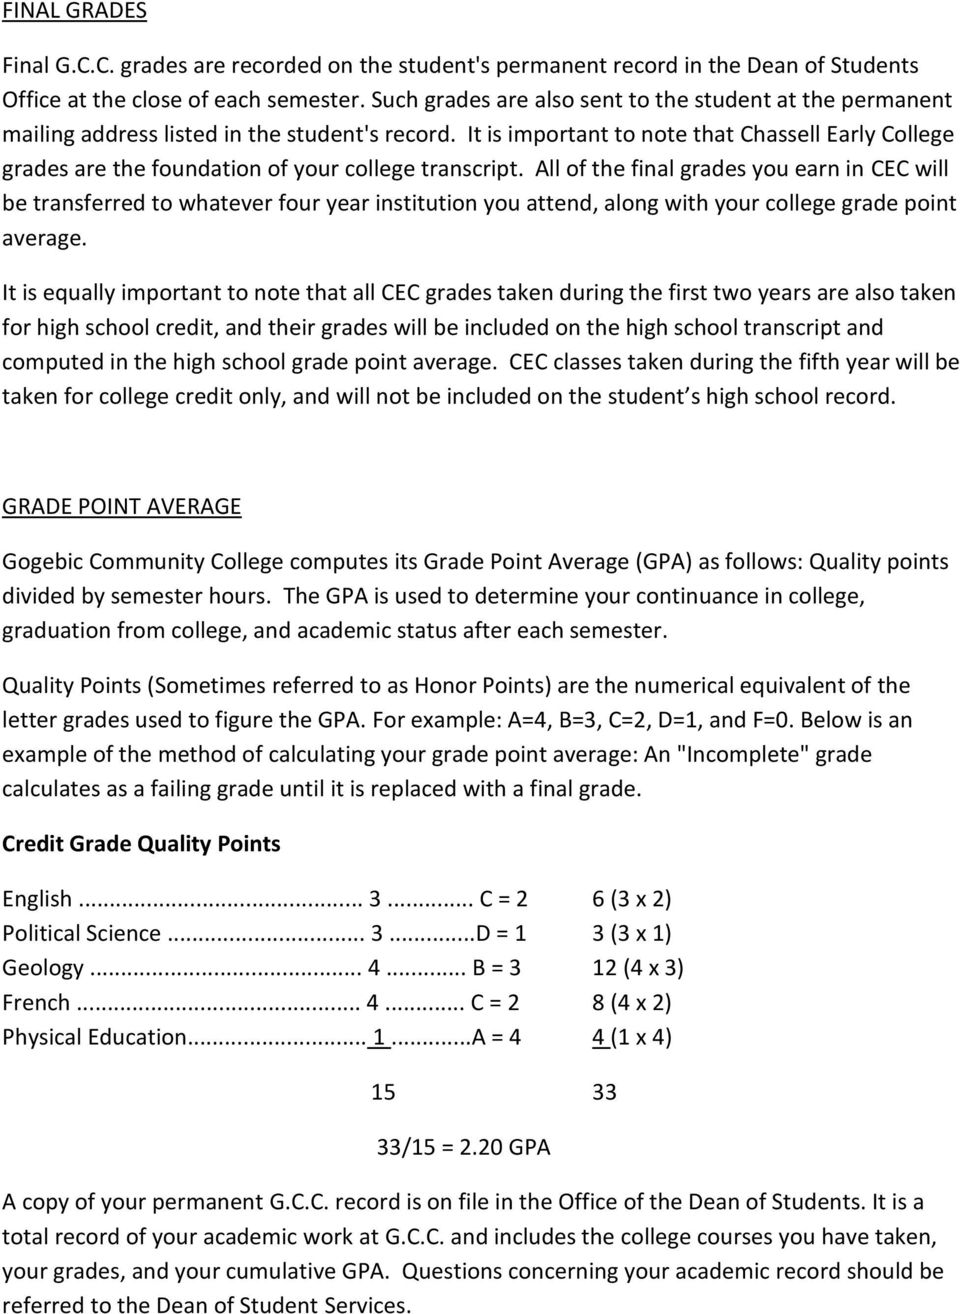 It is important to note that Chassell Early College grades are the foundation of your college transcript.